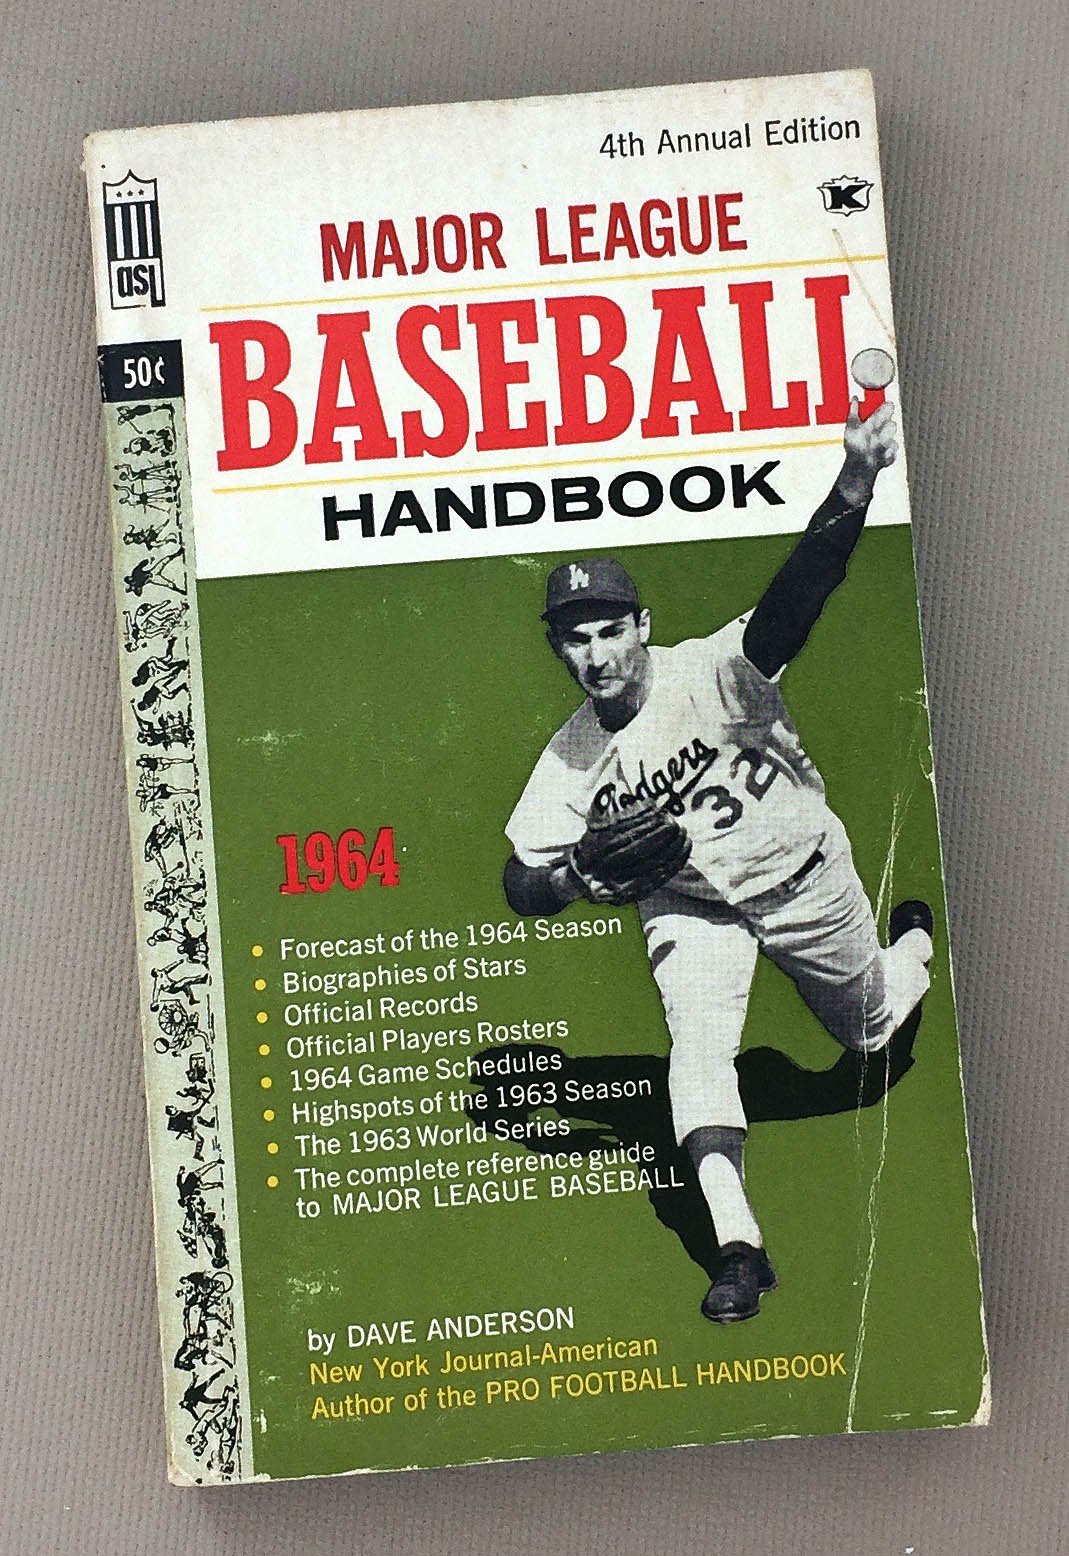 1964 Major League Baseball Handbook